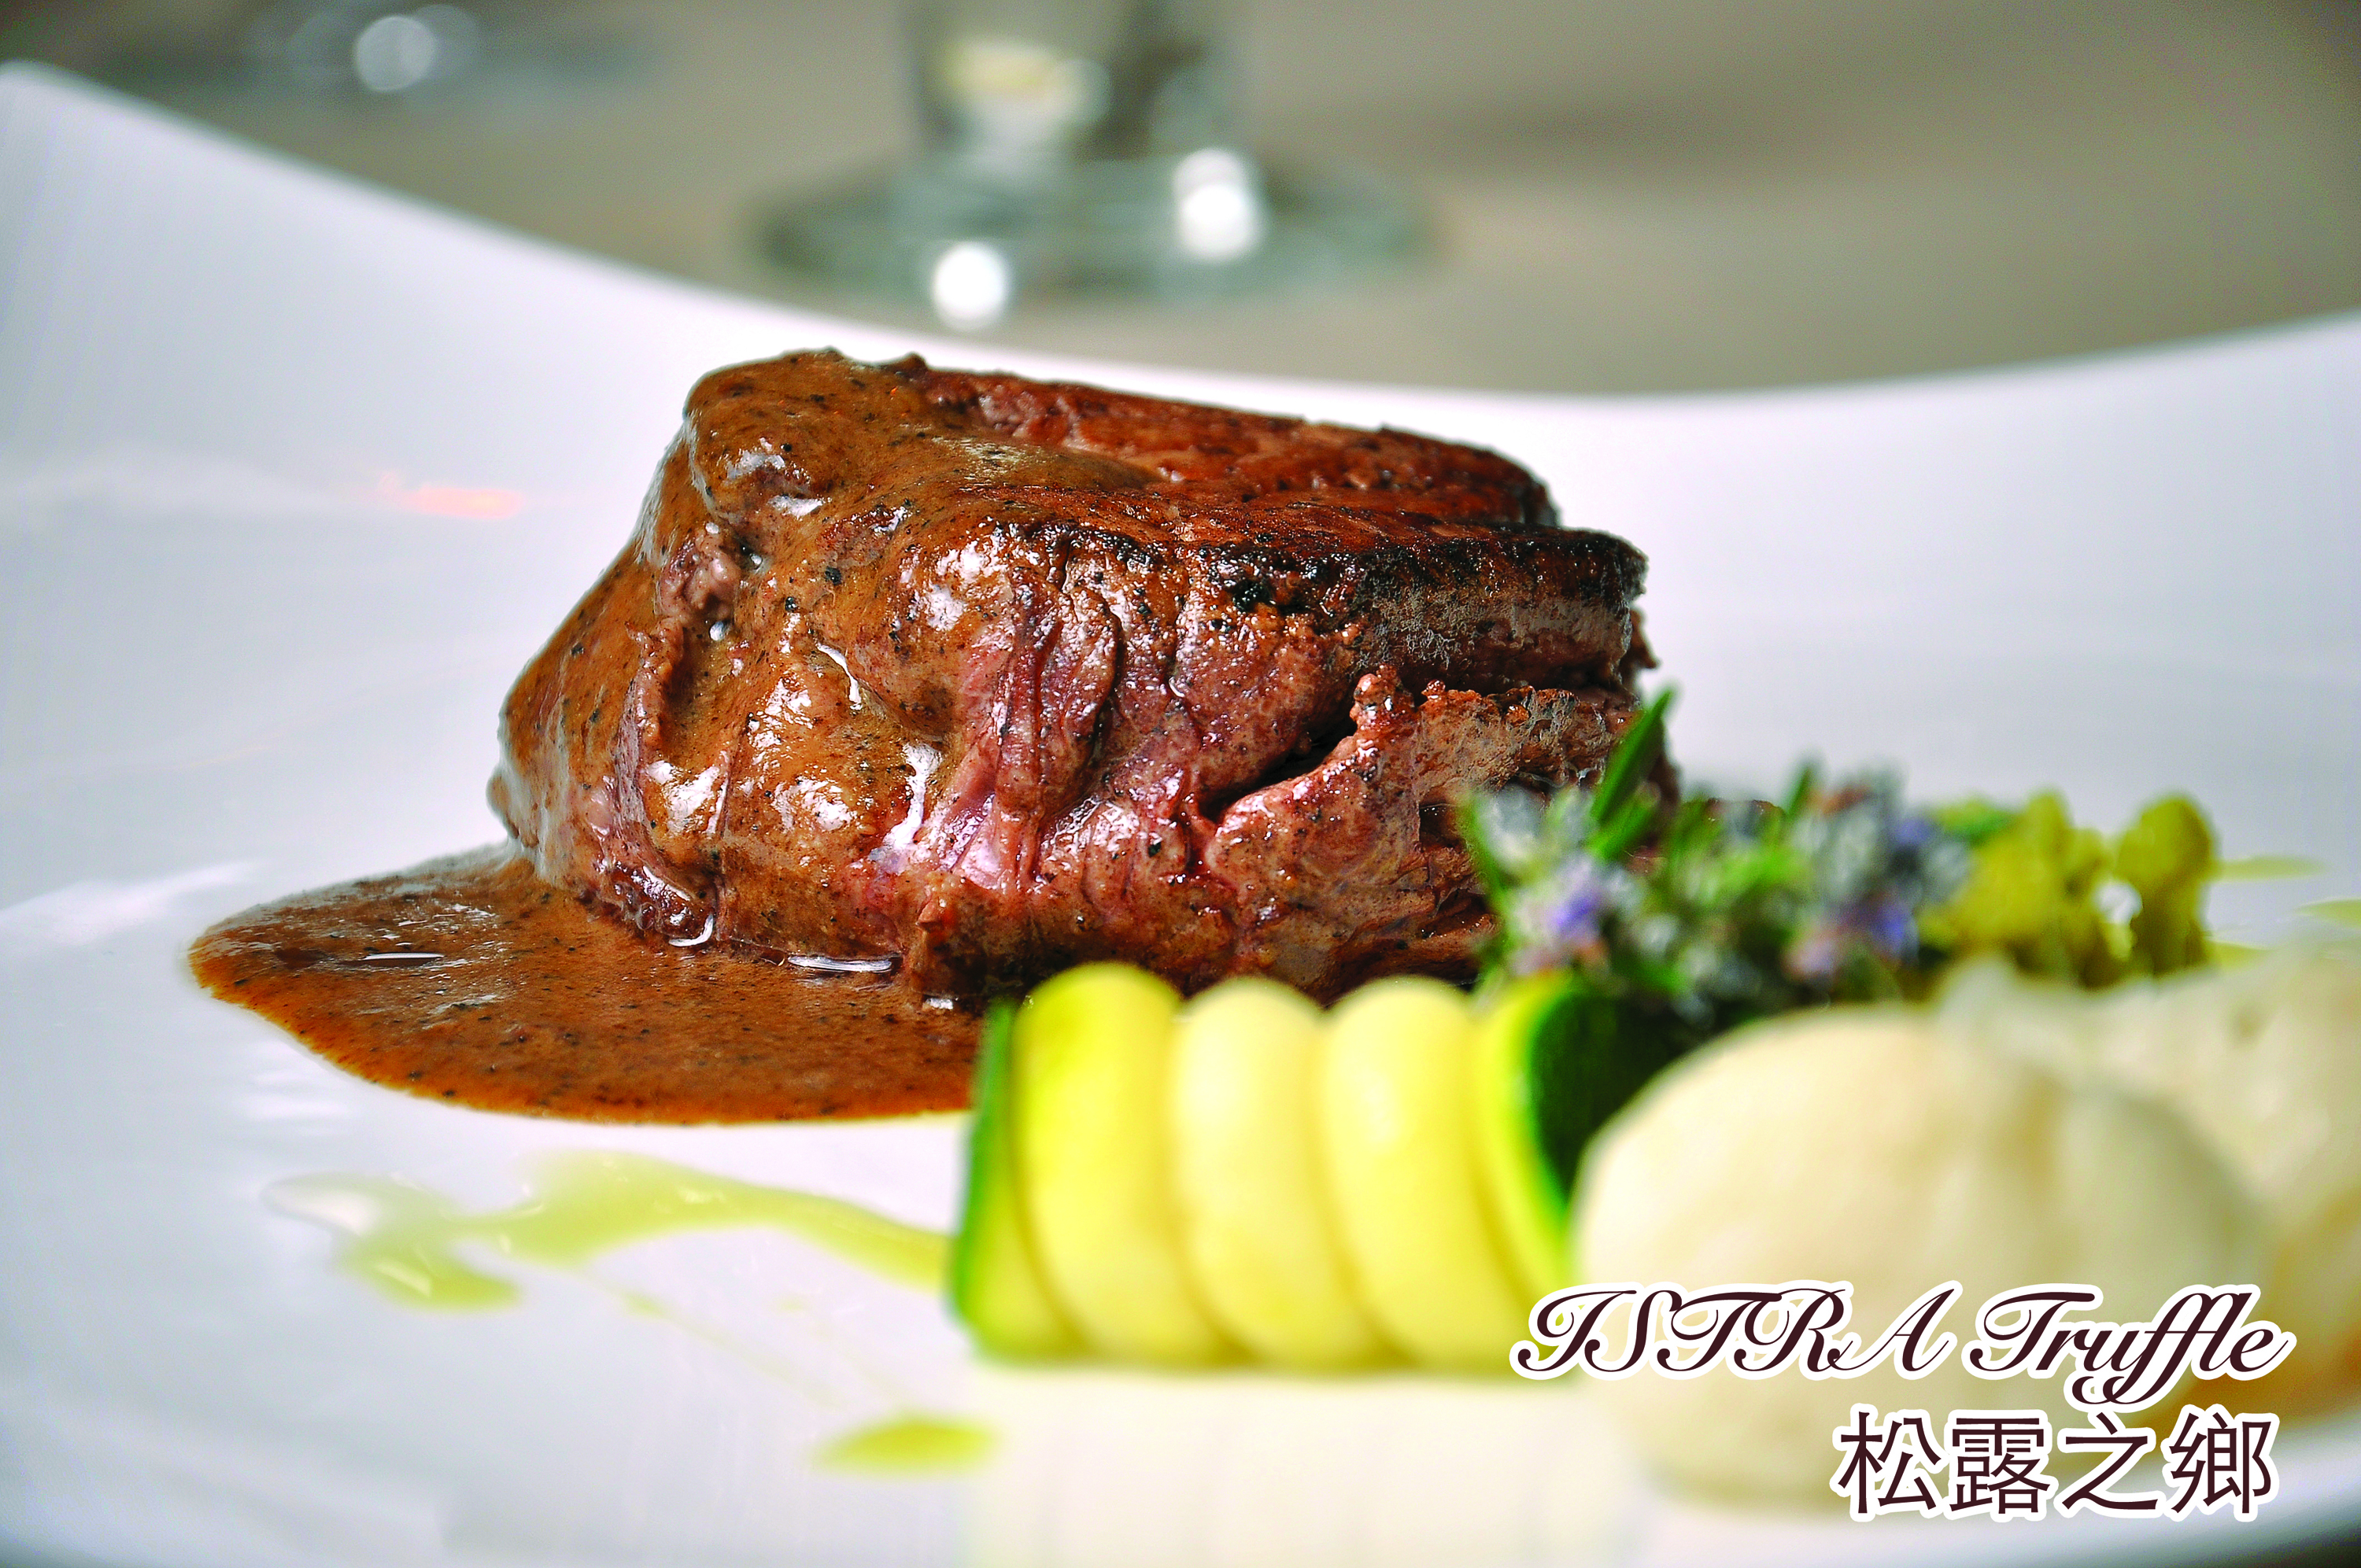 Beef fillets with black truffle sauce